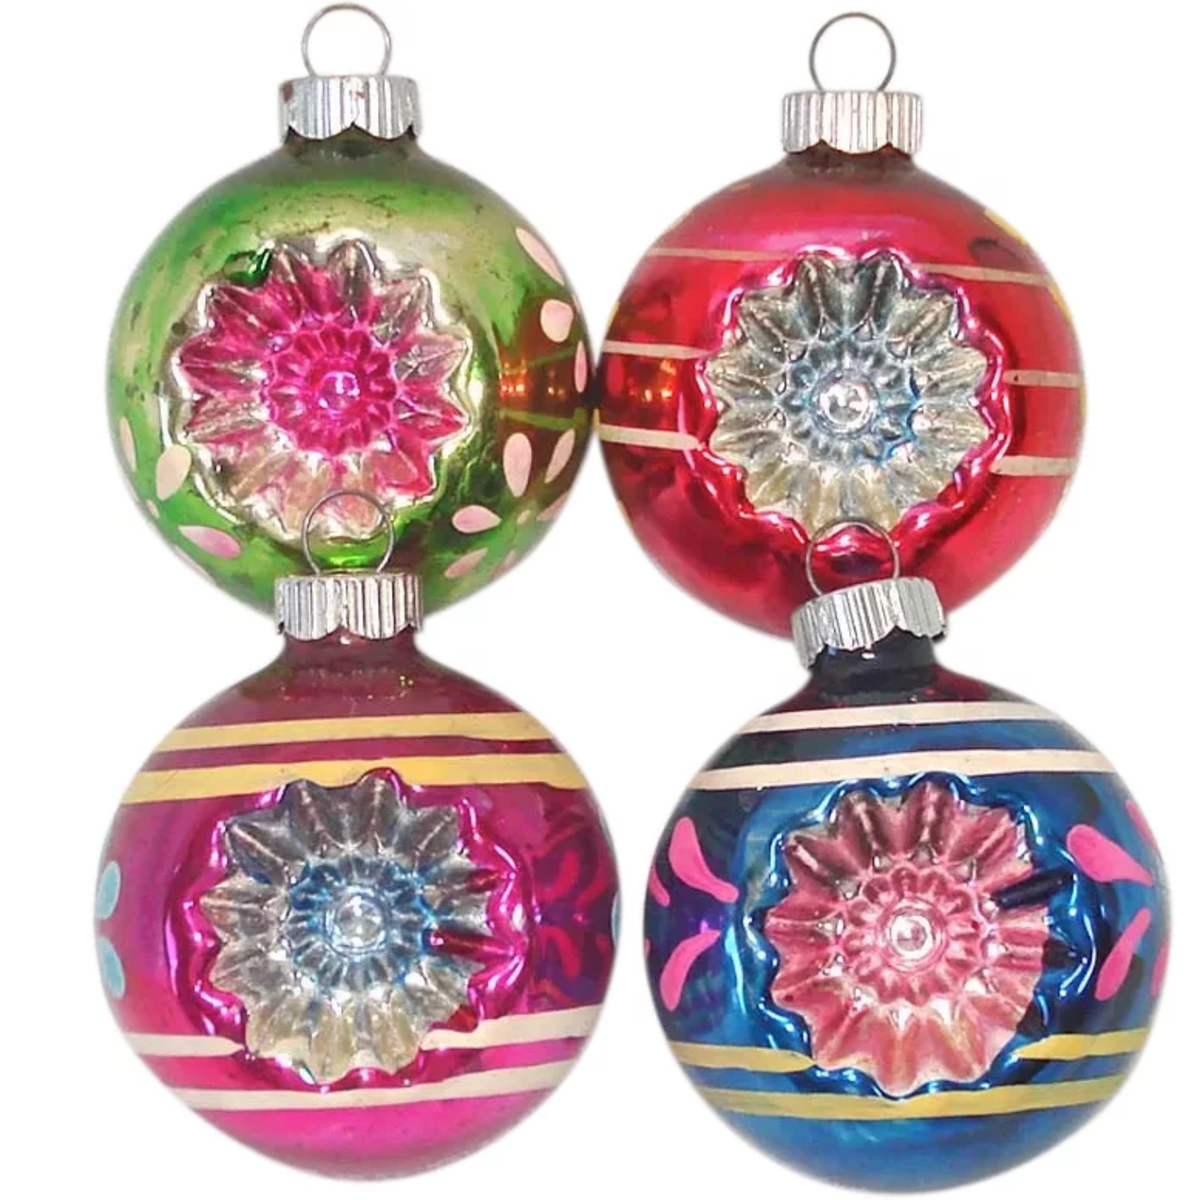 Shiny Brite Christmas Ornaments Have Lasting Appeal With Collectors Antique Trader